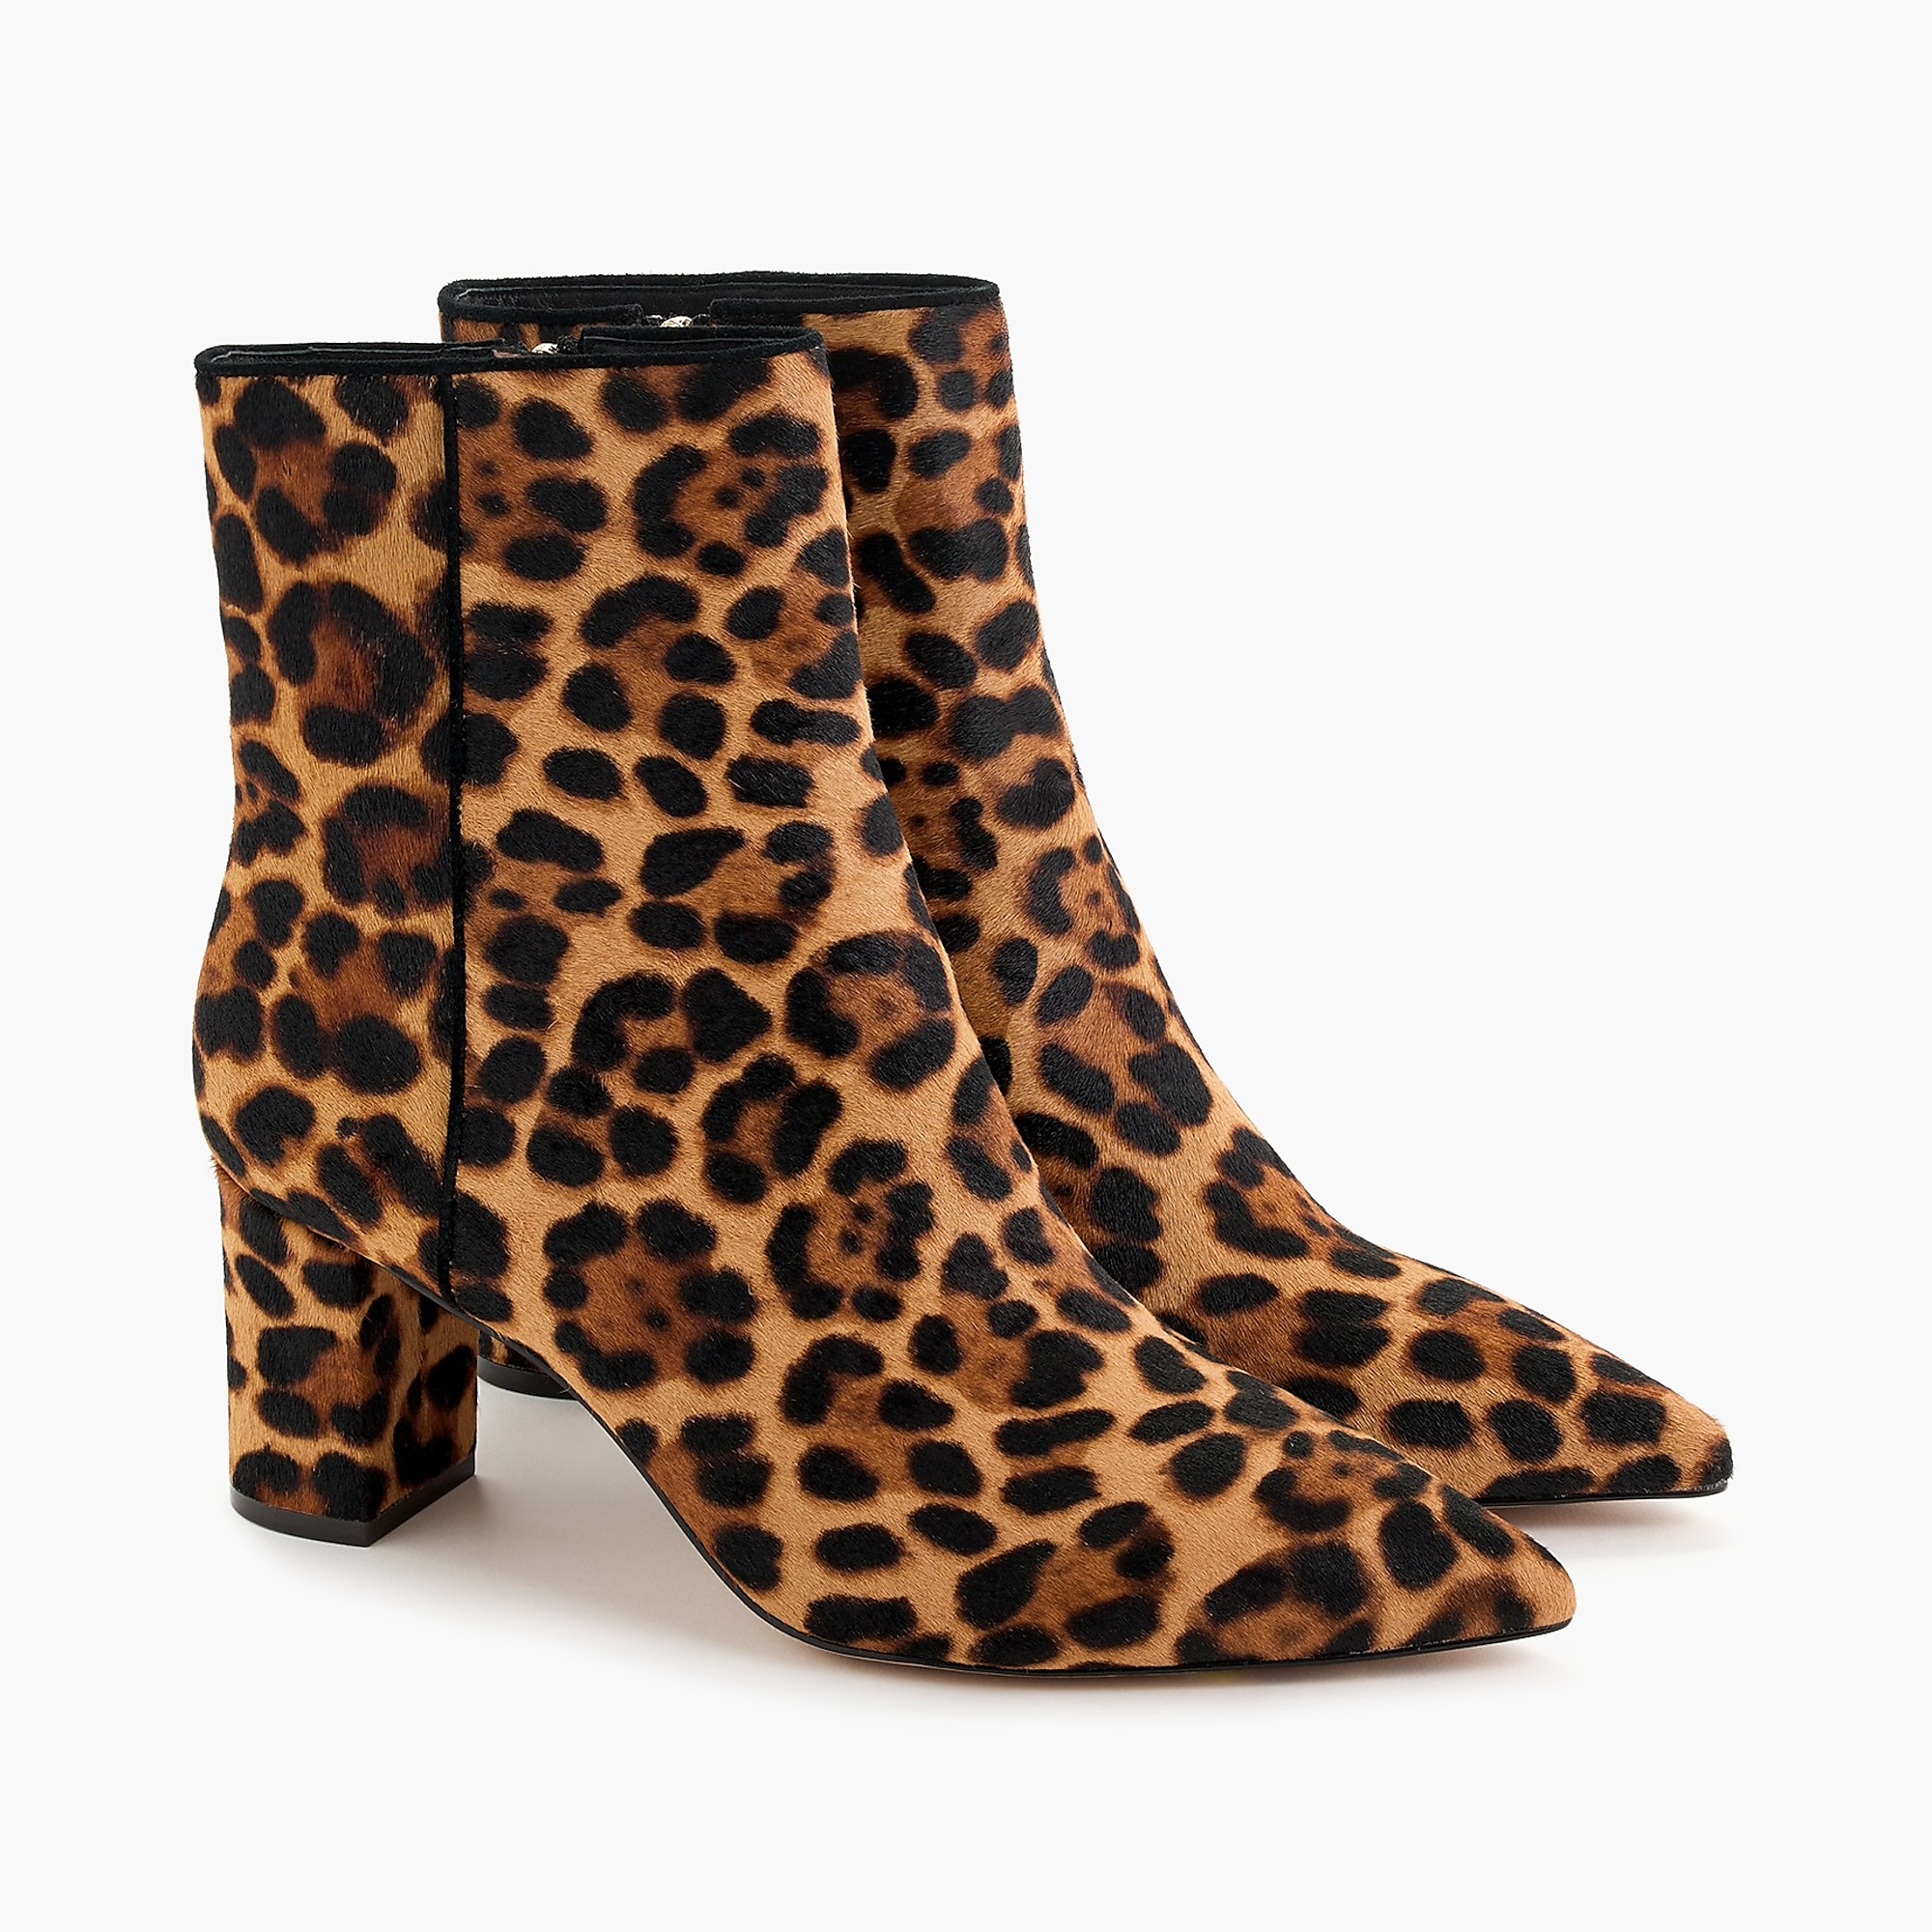 Pointed-toe Sadie boots in leopard calf hair